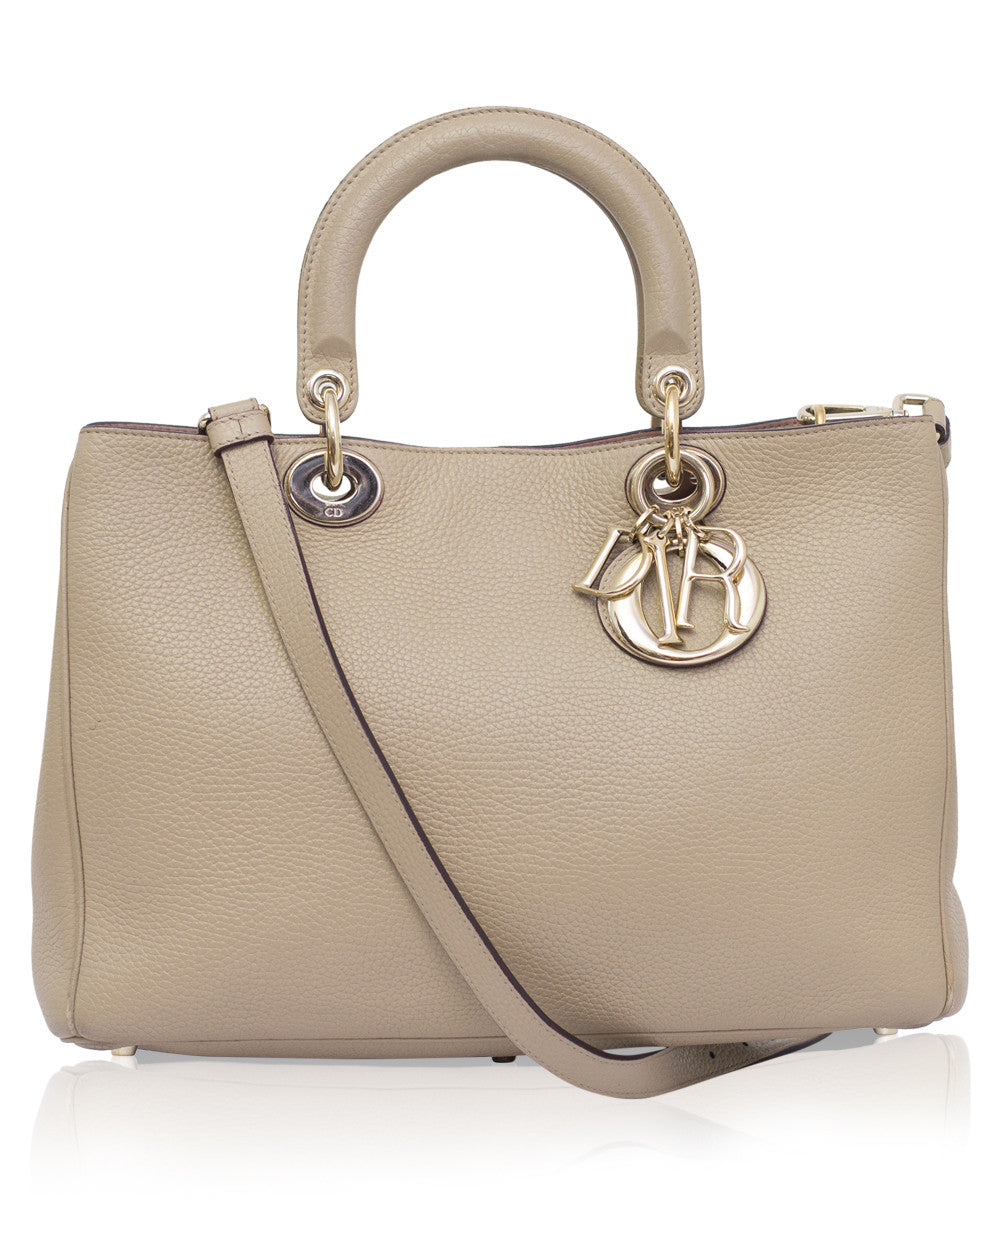 Beige Diorissimo Medium Tote Bag